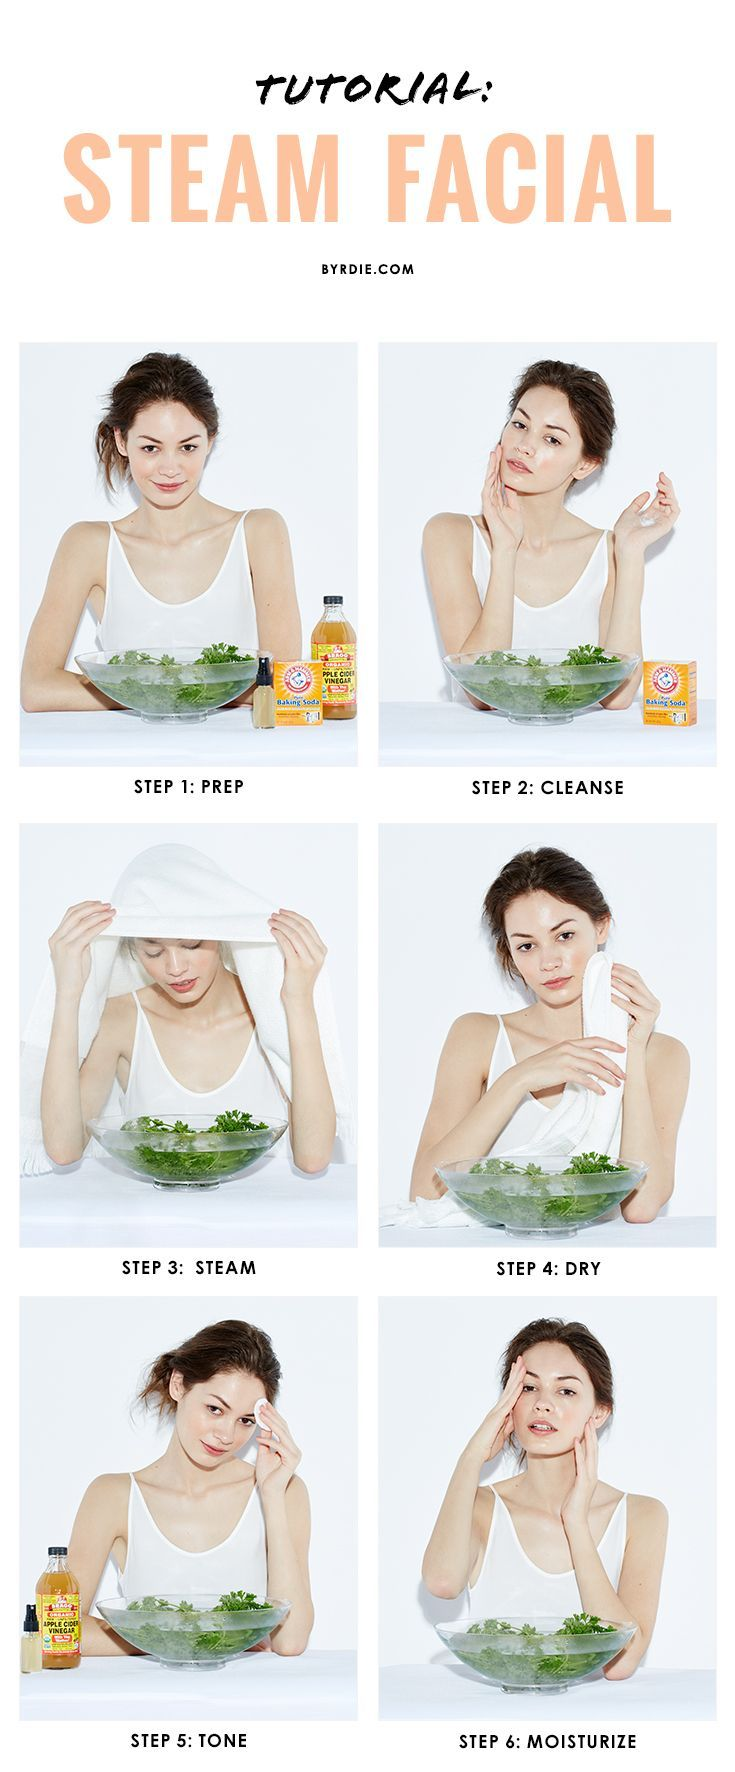 Diy facial steam and nutrition for healthy aging thefitcookie diy facial steam and nutrition for healthy aging thefitcookie ad douglaslabs beautyfromwithin healthy living pinterest healthy aging facial solutioingenieria Images